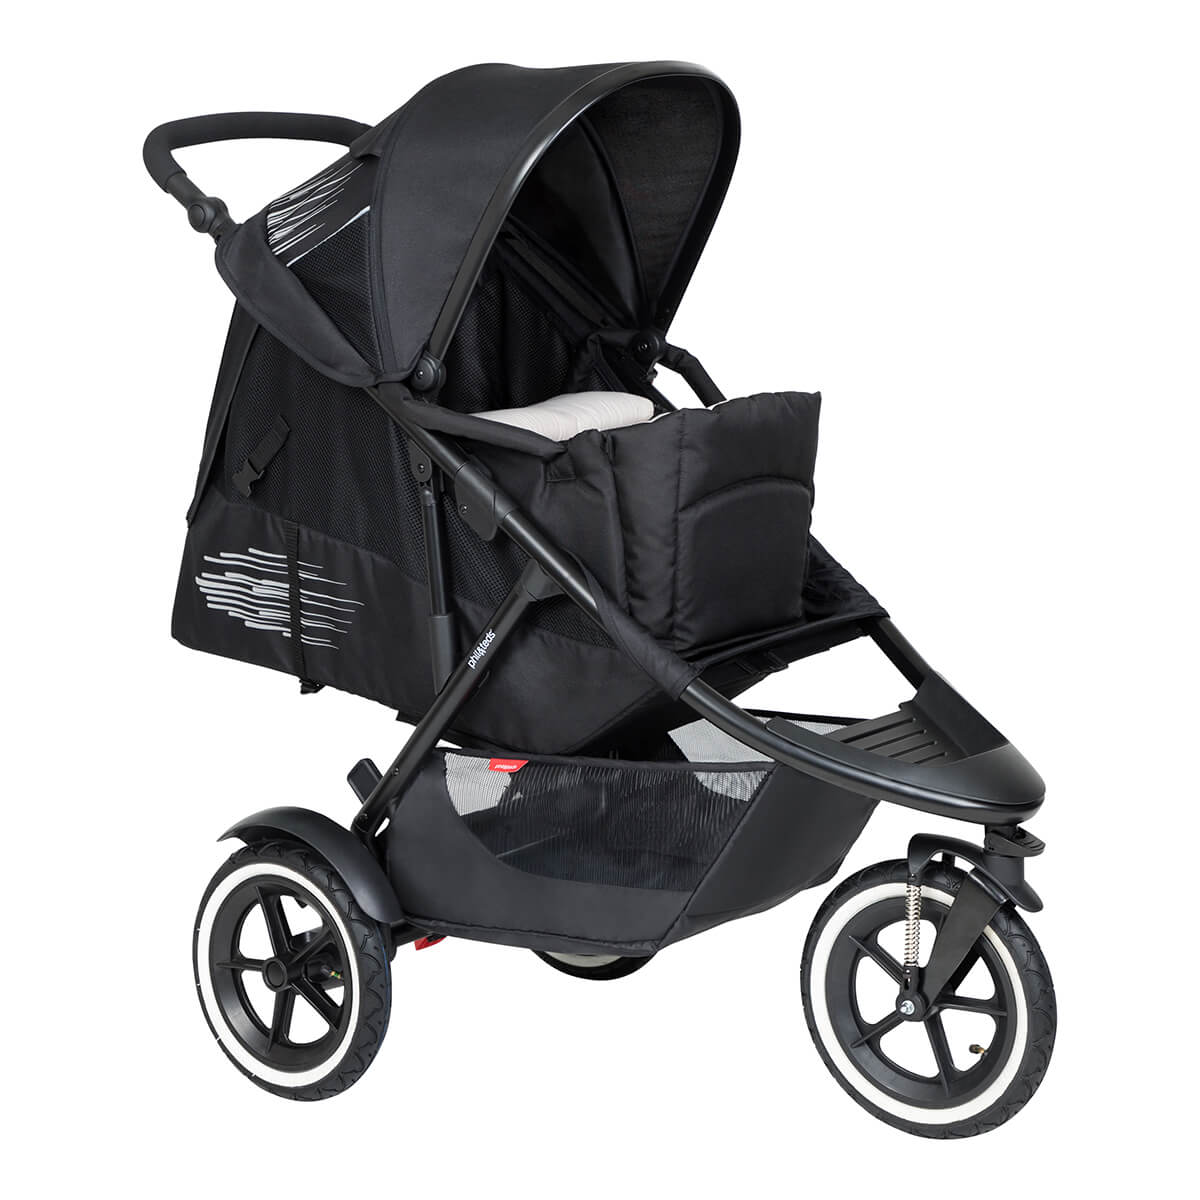 https://cdn.accentuate.io/4417276117026/19437753204914/philteds-sport-buggy-with-cocoon-full-recline-v1626482705206.jpg?1200x1200